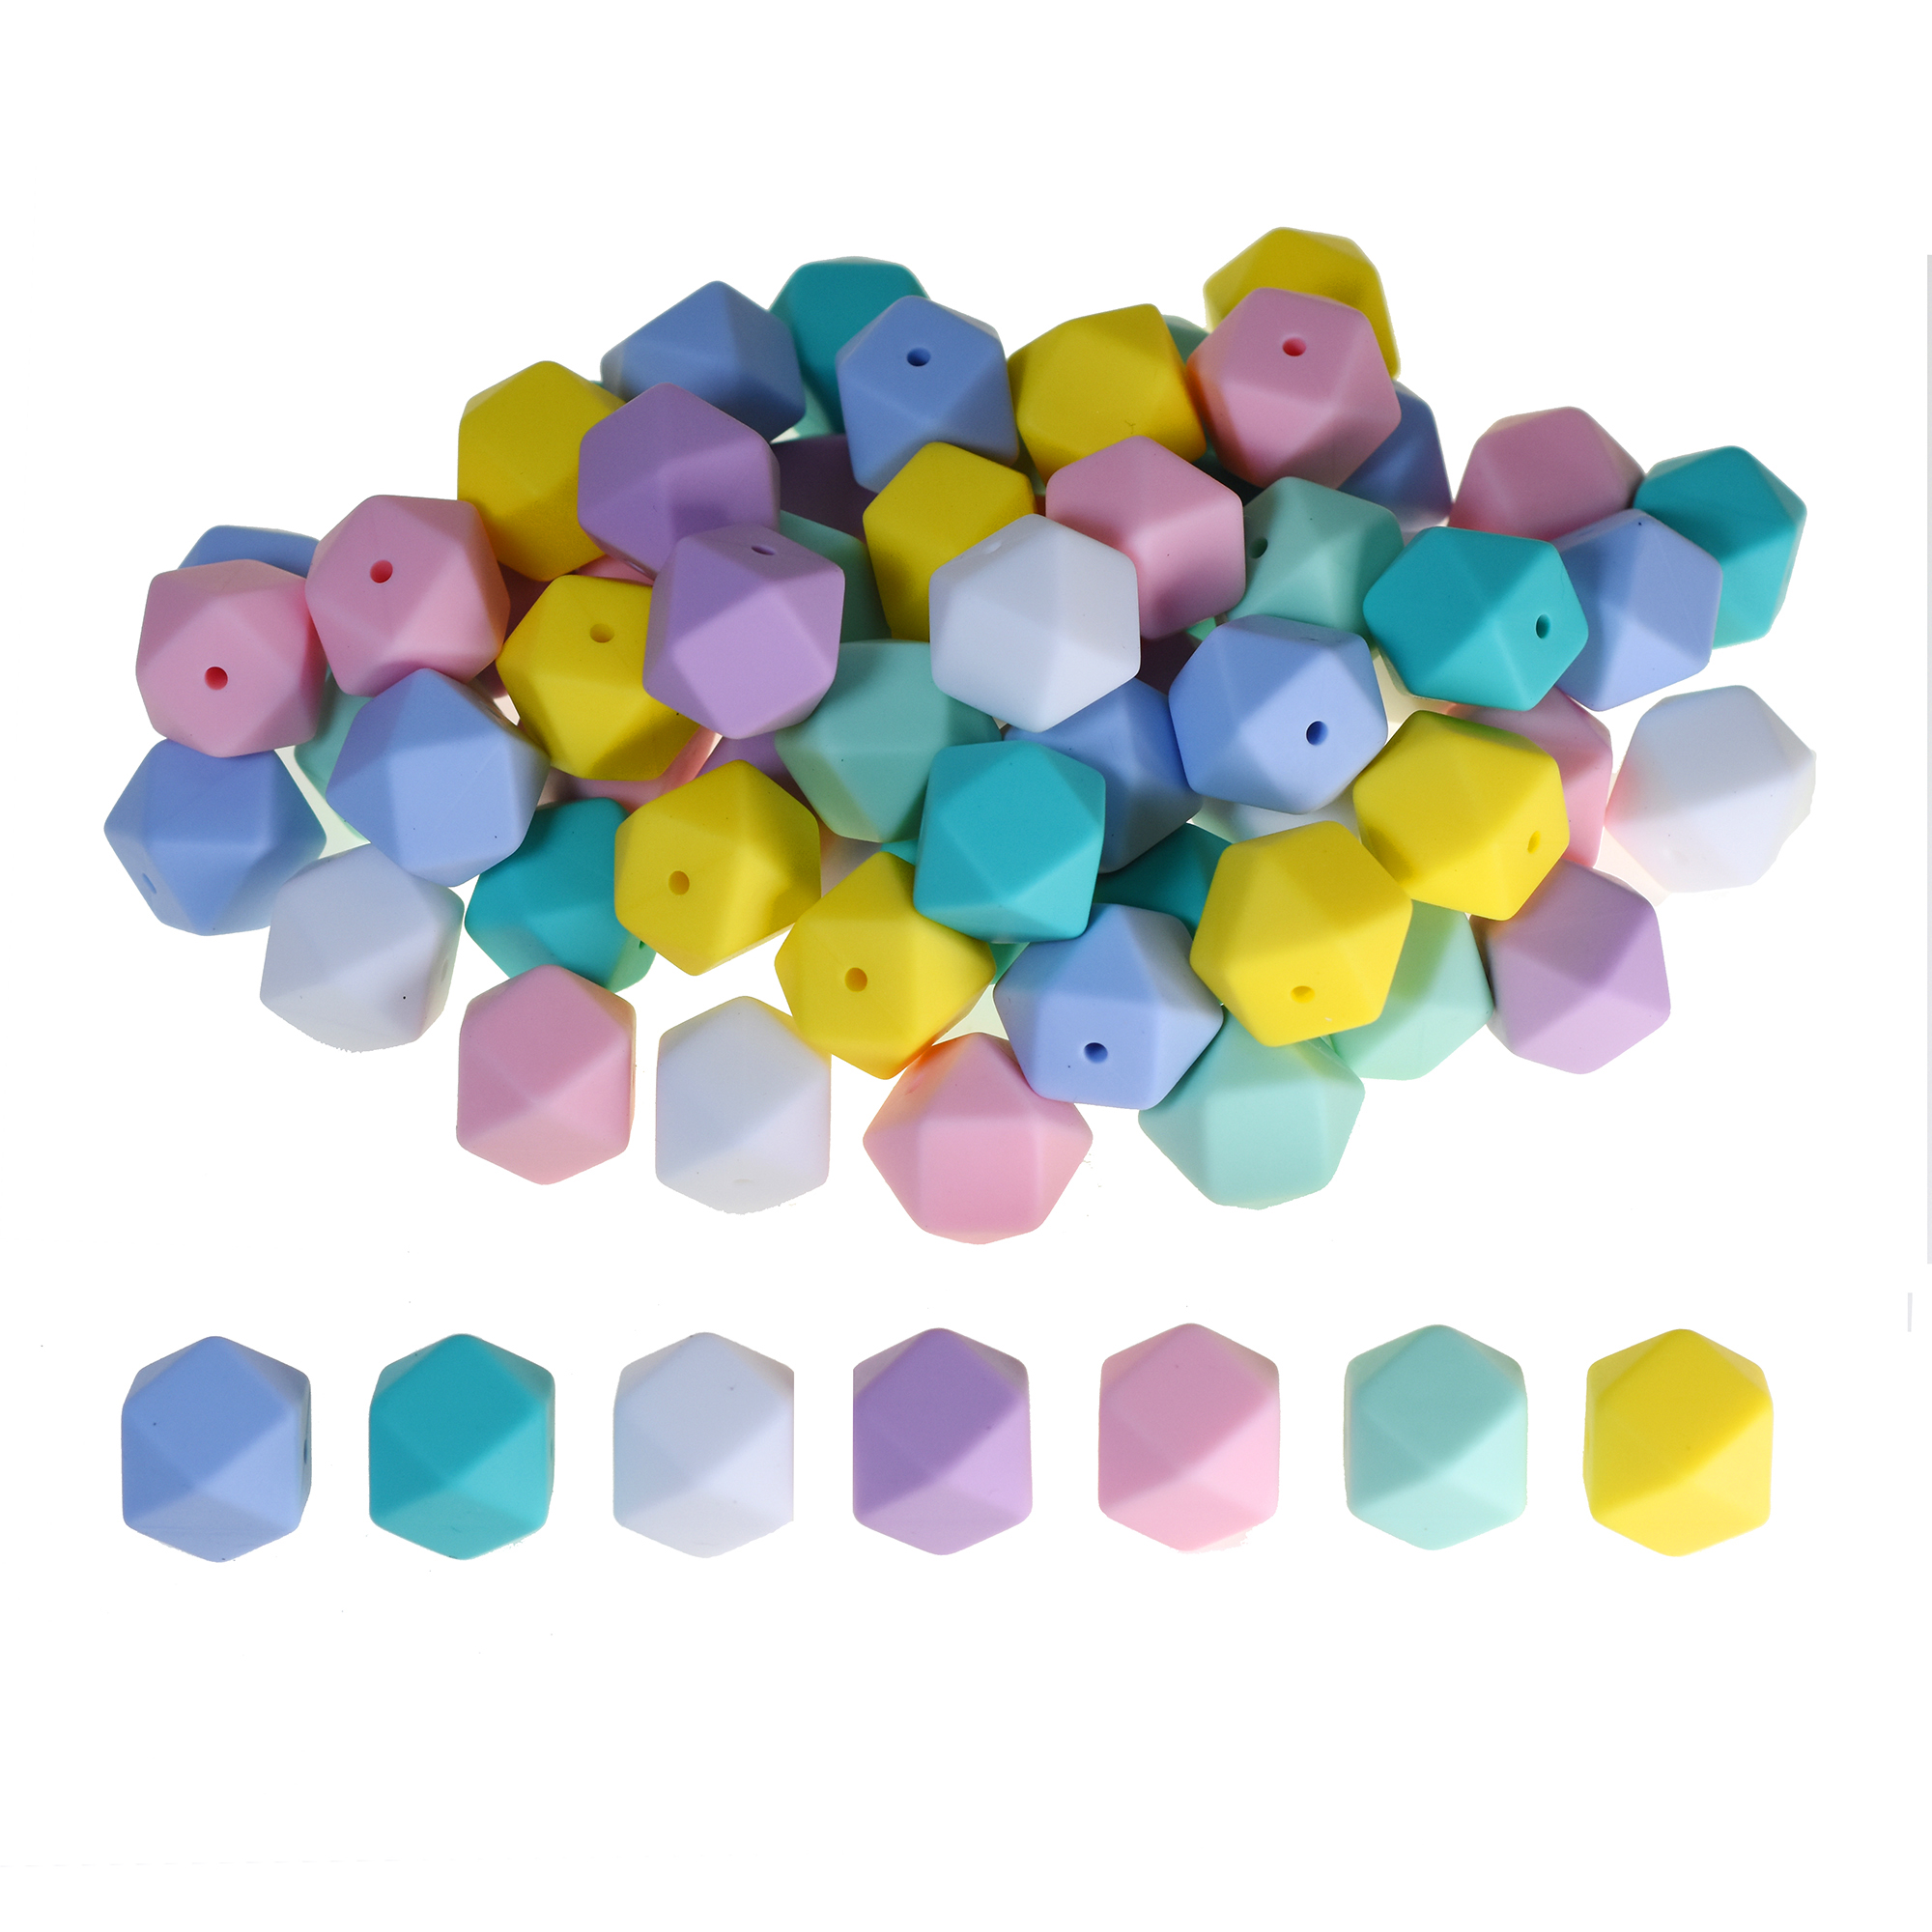 Hexagon Silicone Teething Beads DIY Baby Safe Teeth Care Jewelry Making 17mm